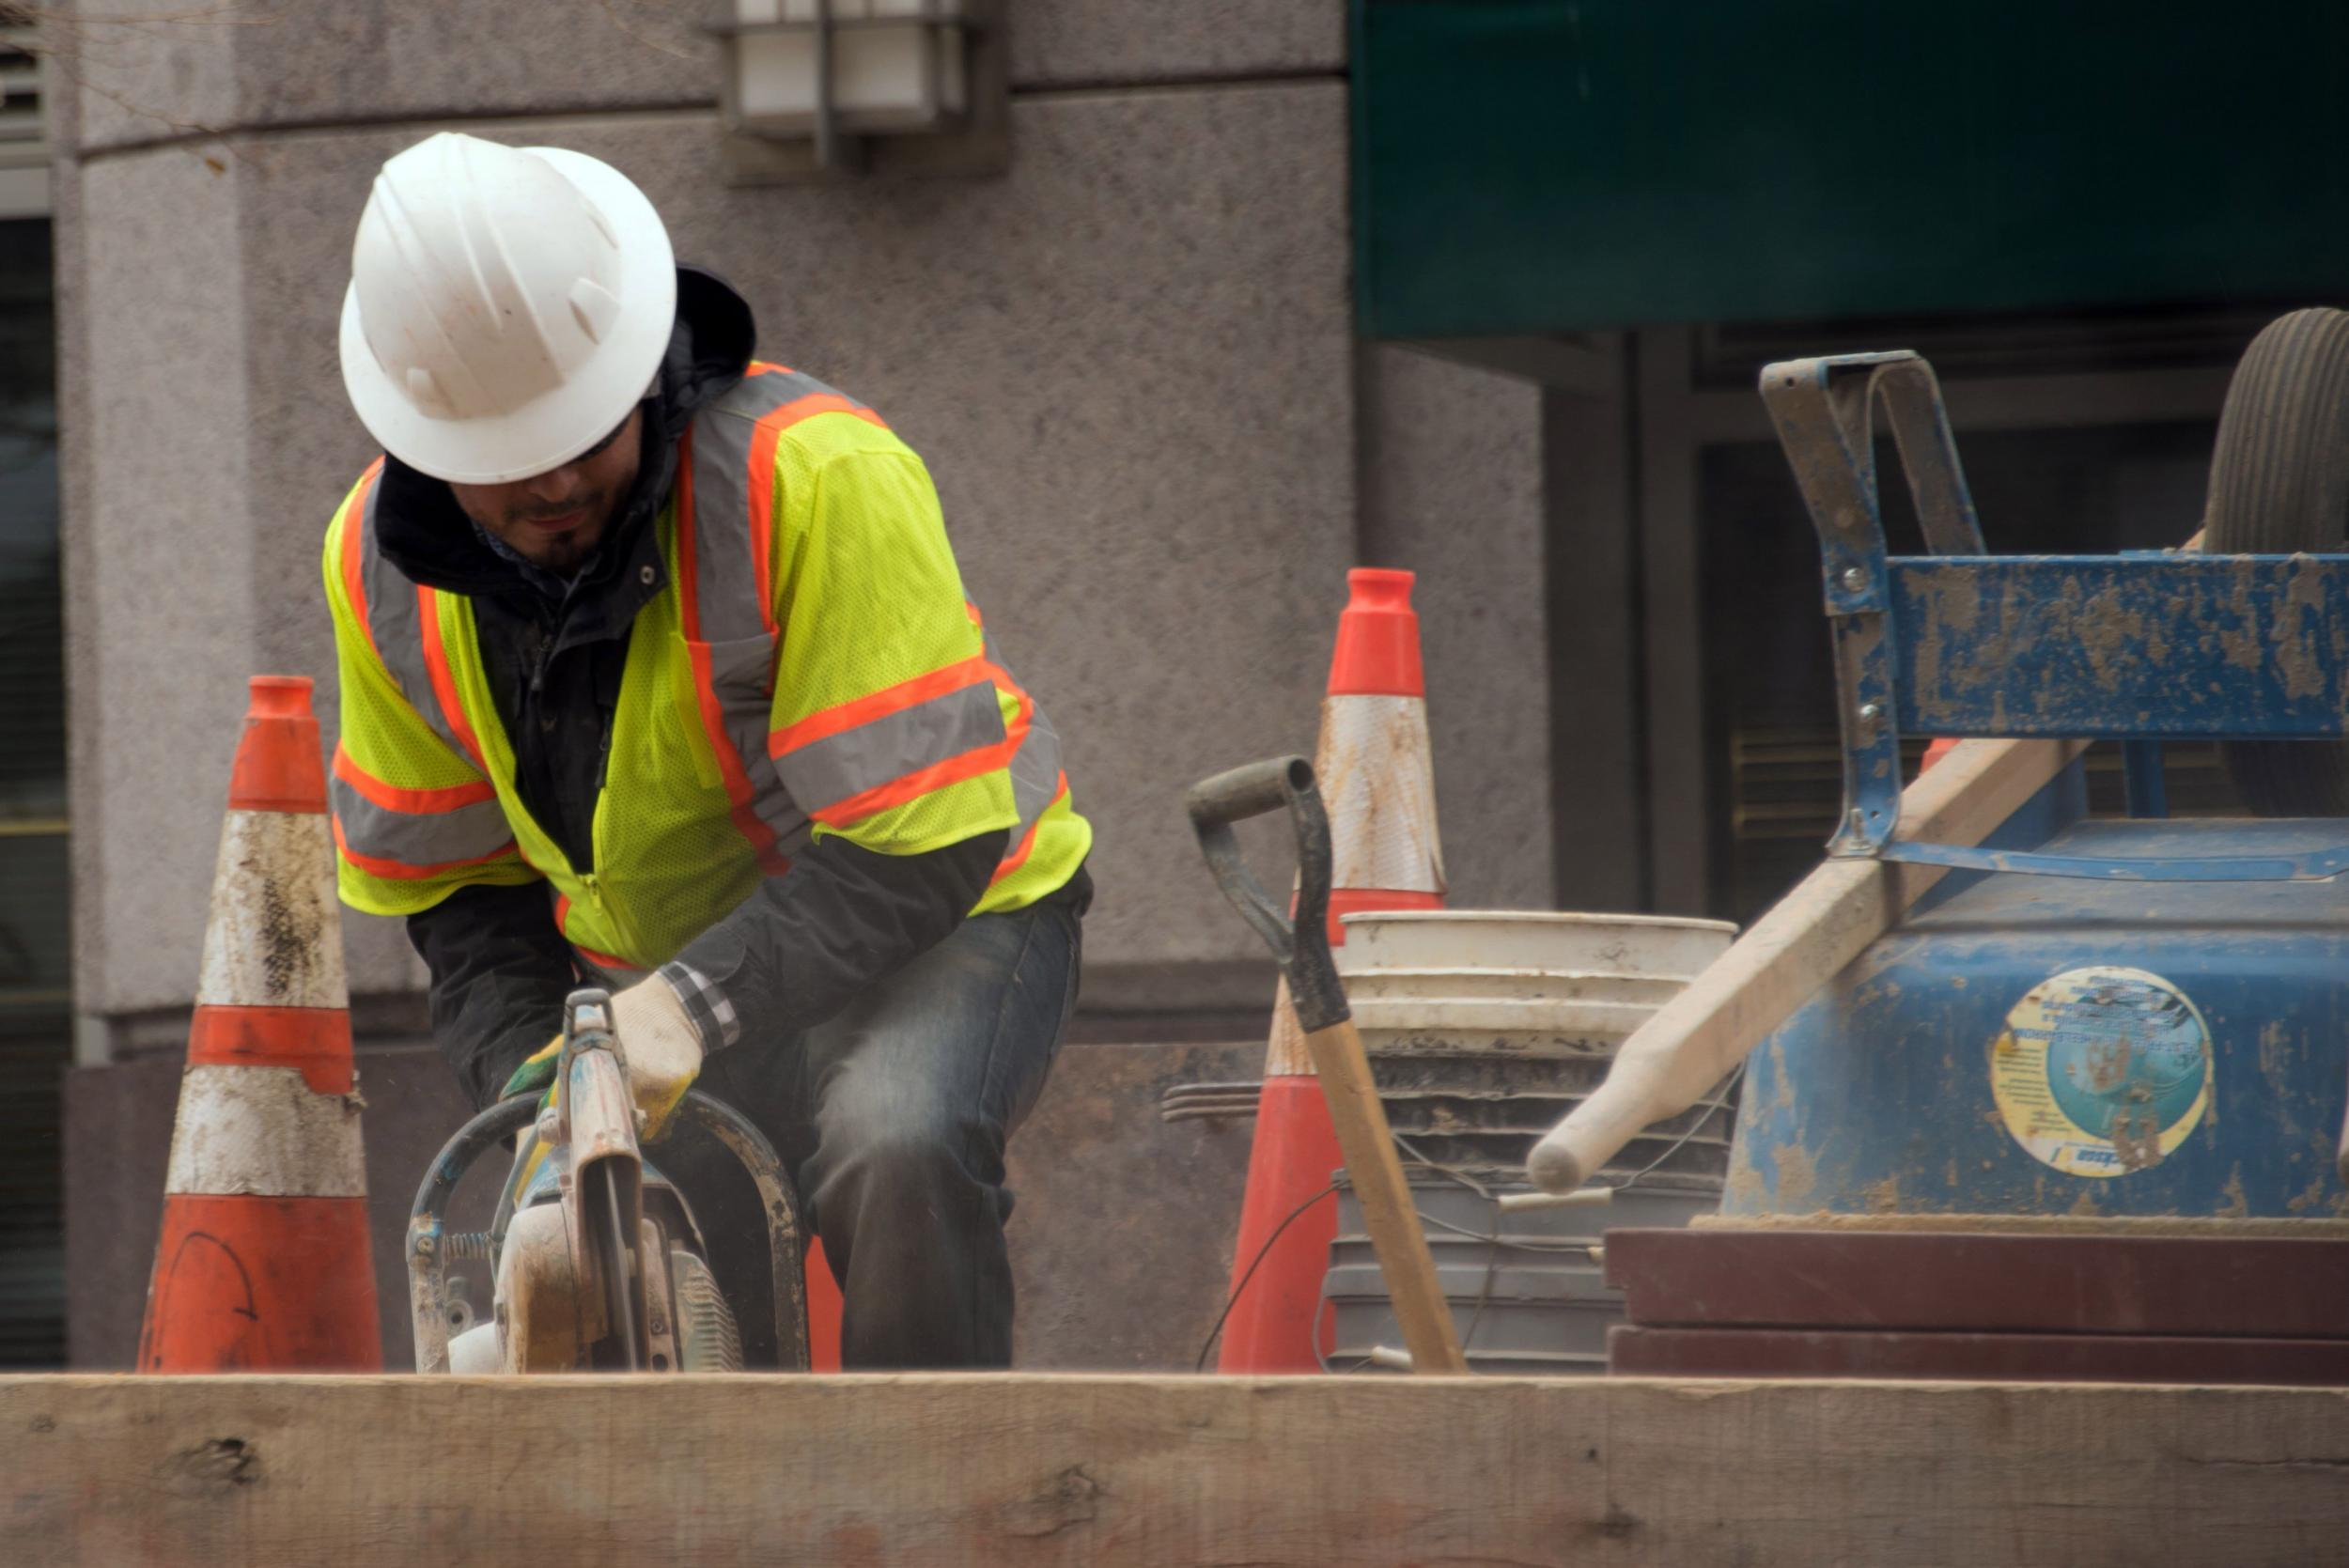 US jobs rise at fastest rate in two years in February, but wage